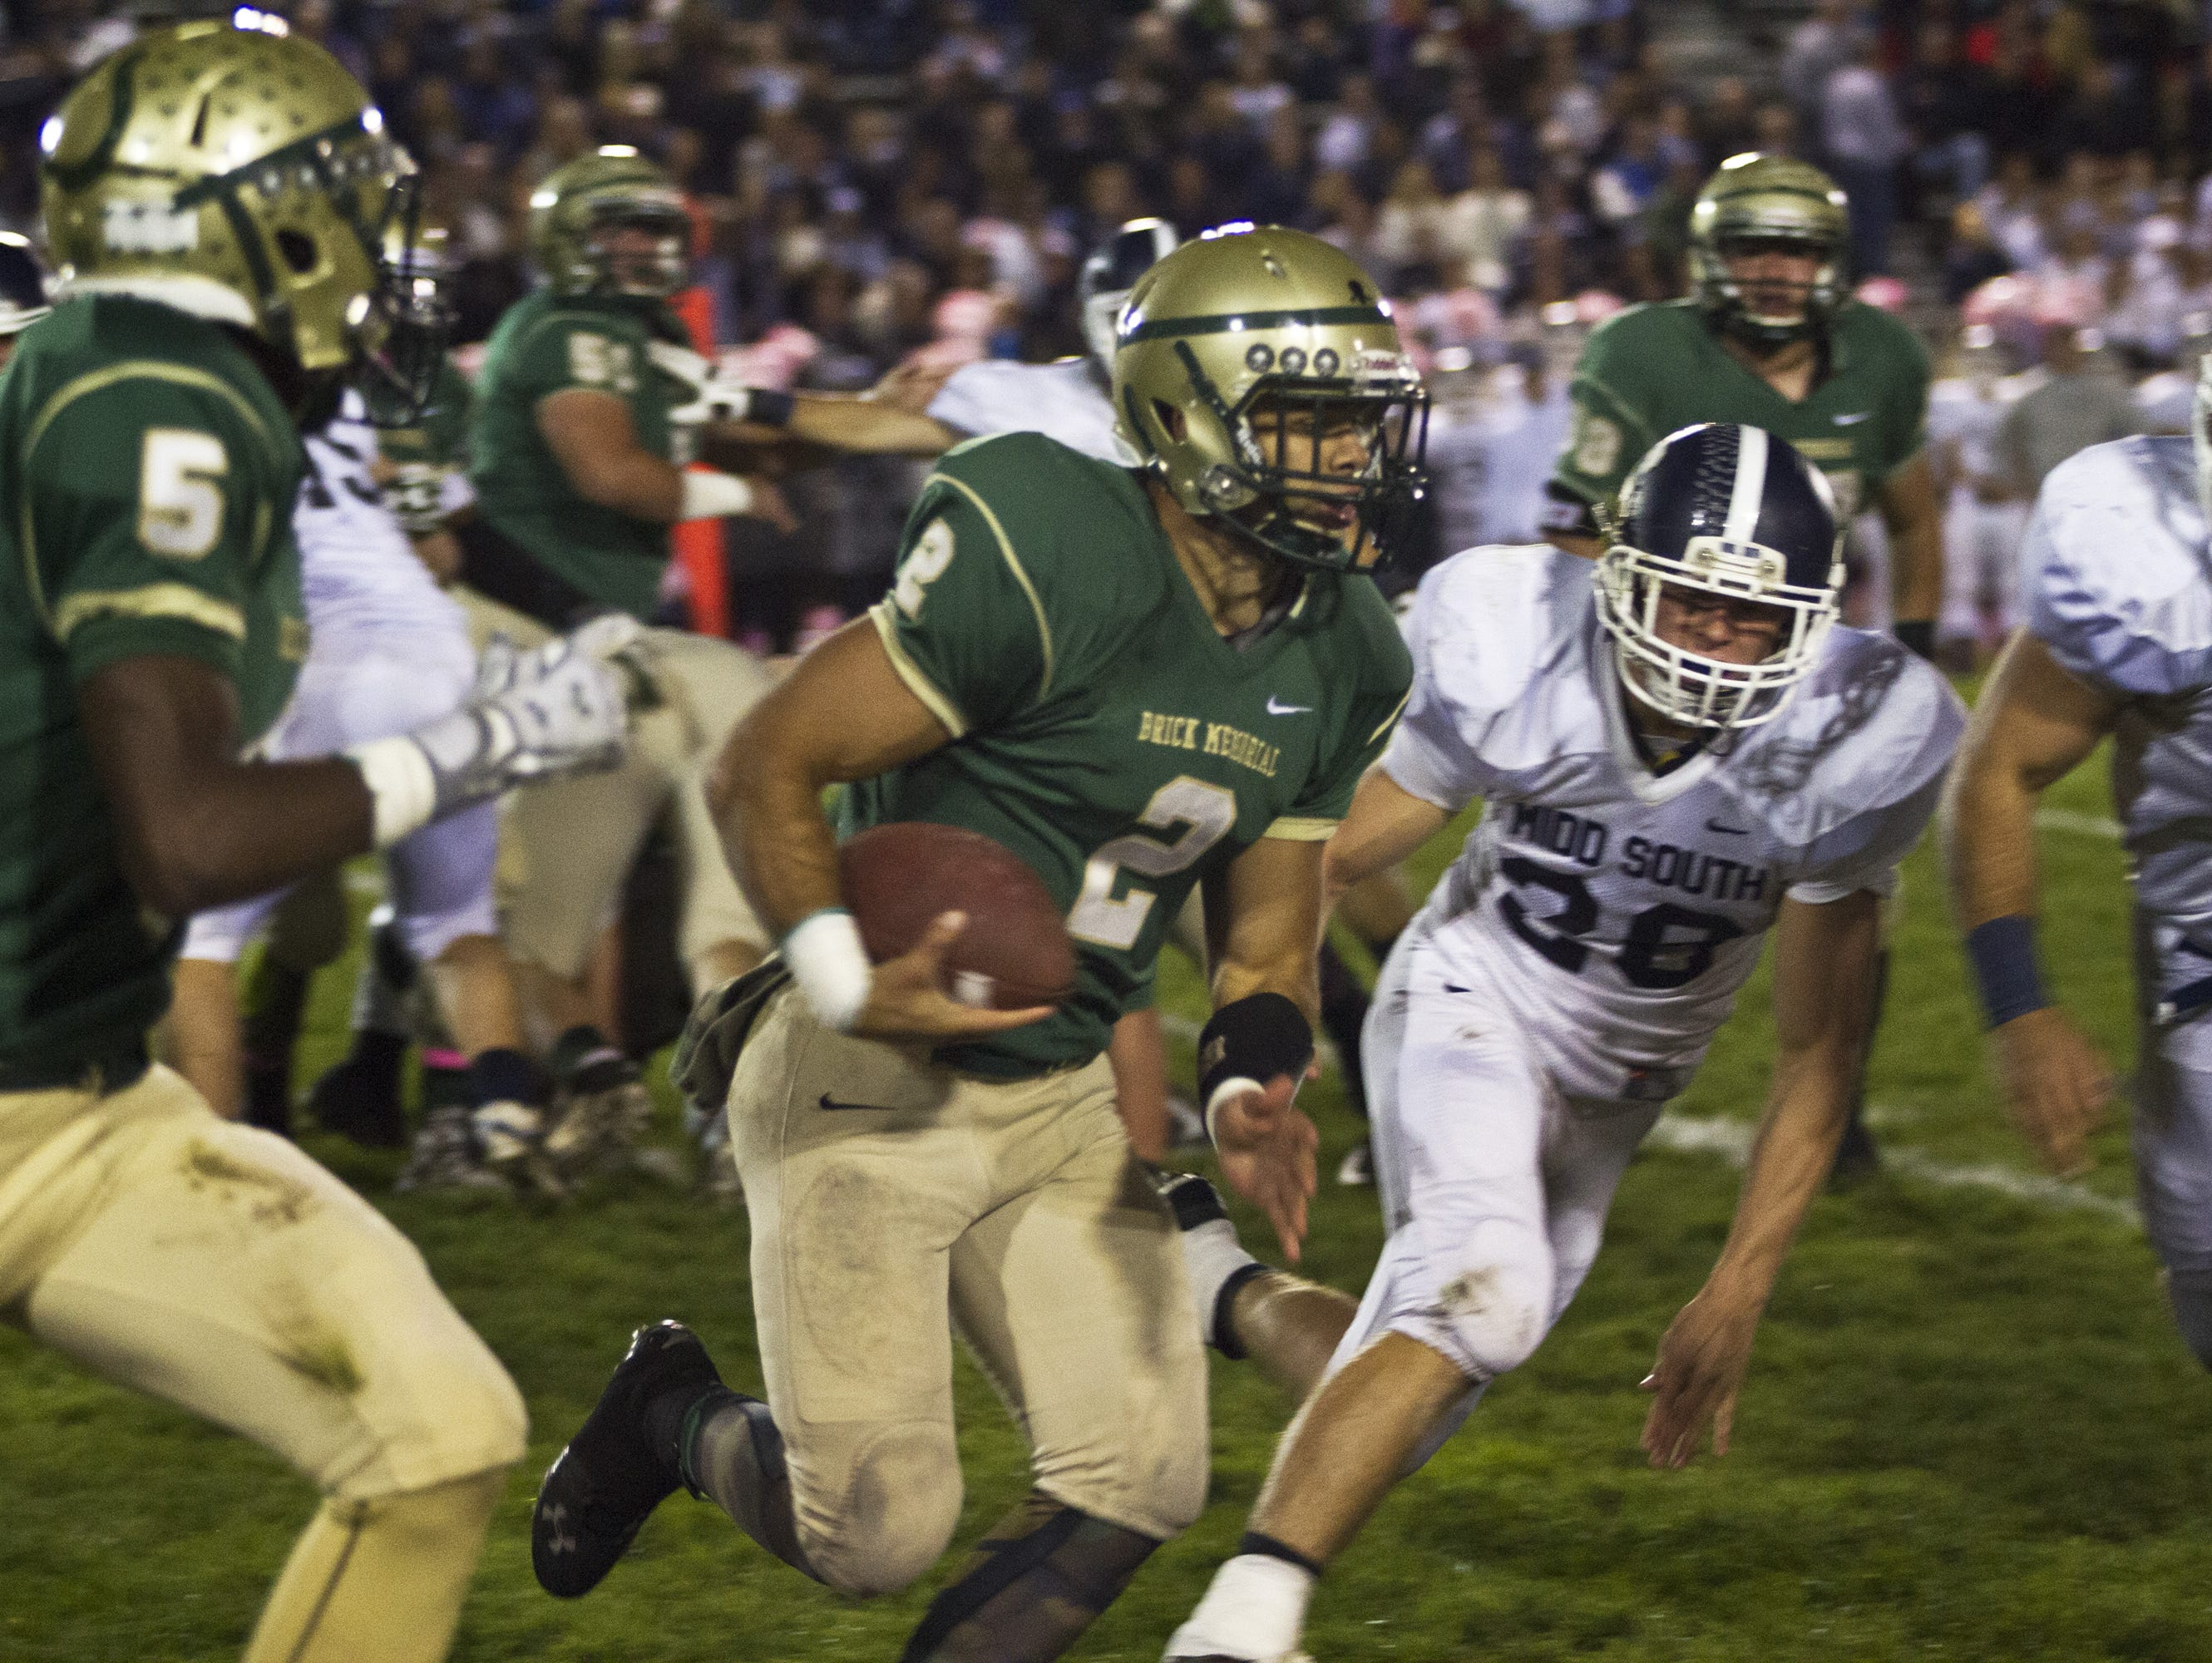 Brick Memorial quarterback Tim Santiago, shown running against Middletown South on Oct. 23, is a key player in Brick Memorial's triple option offense.